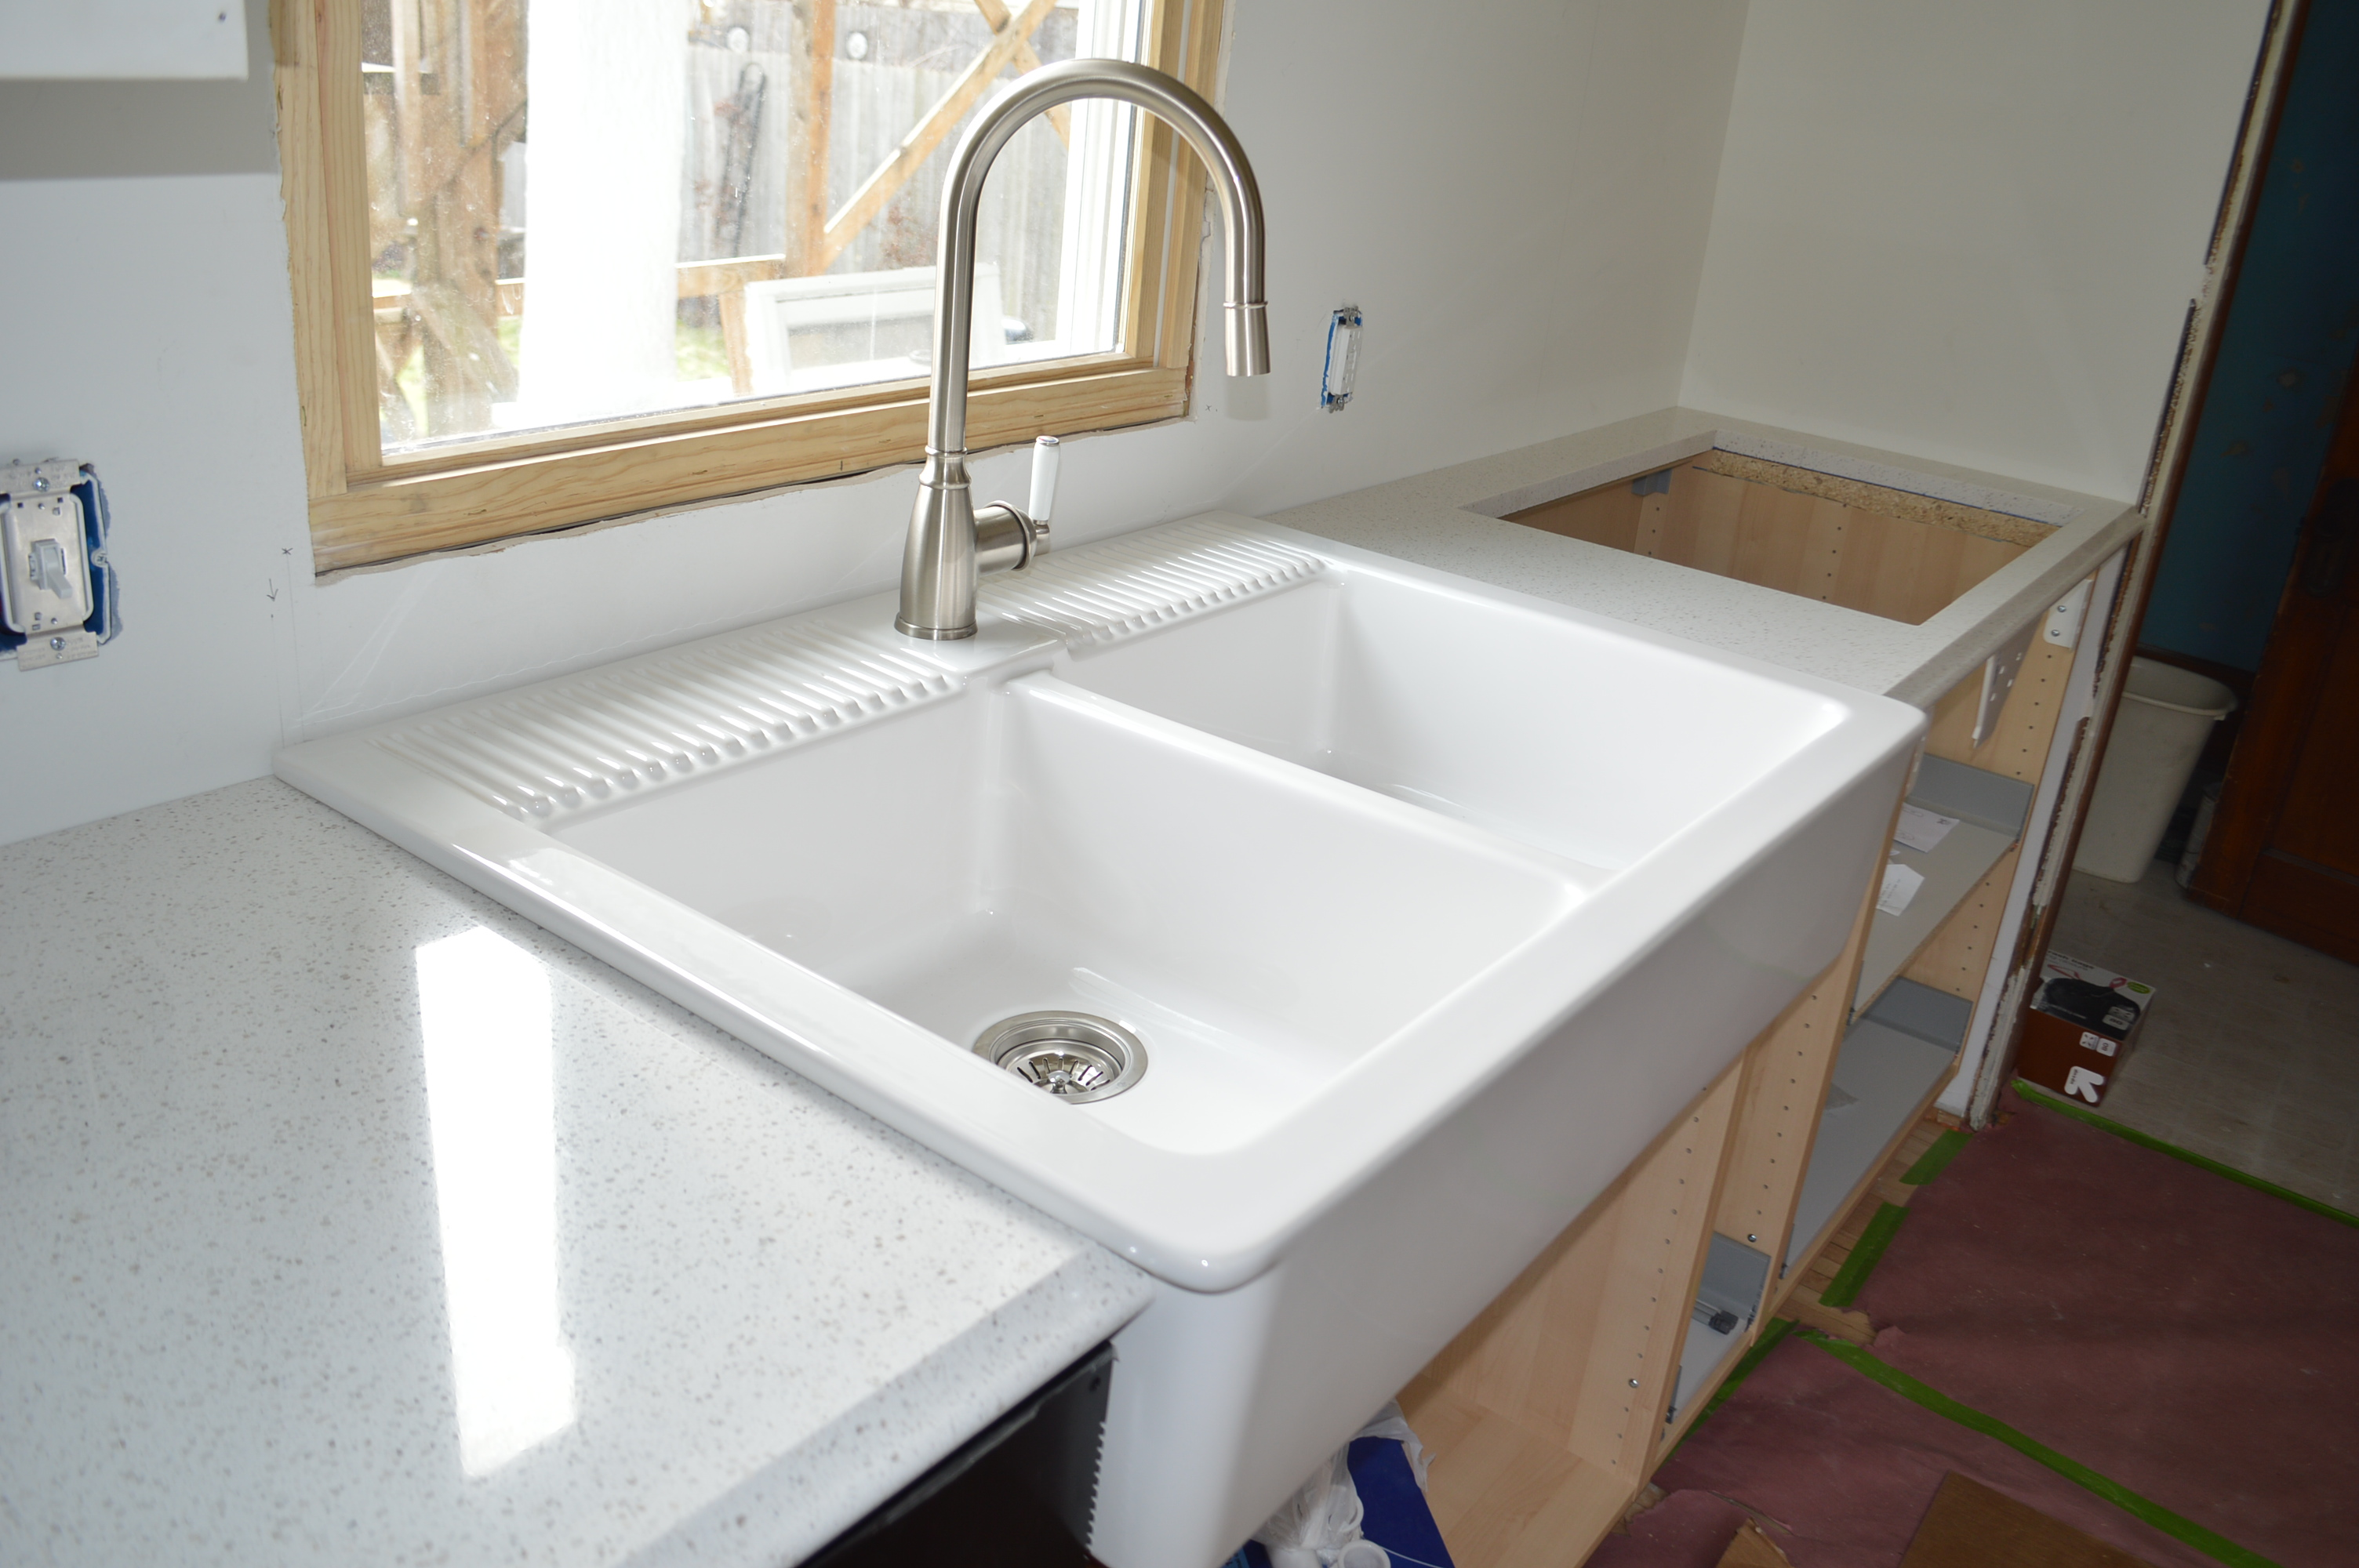 Cost Of Quartz Countertops Installed Ikea Countertop Installation Cost Productionsmaster